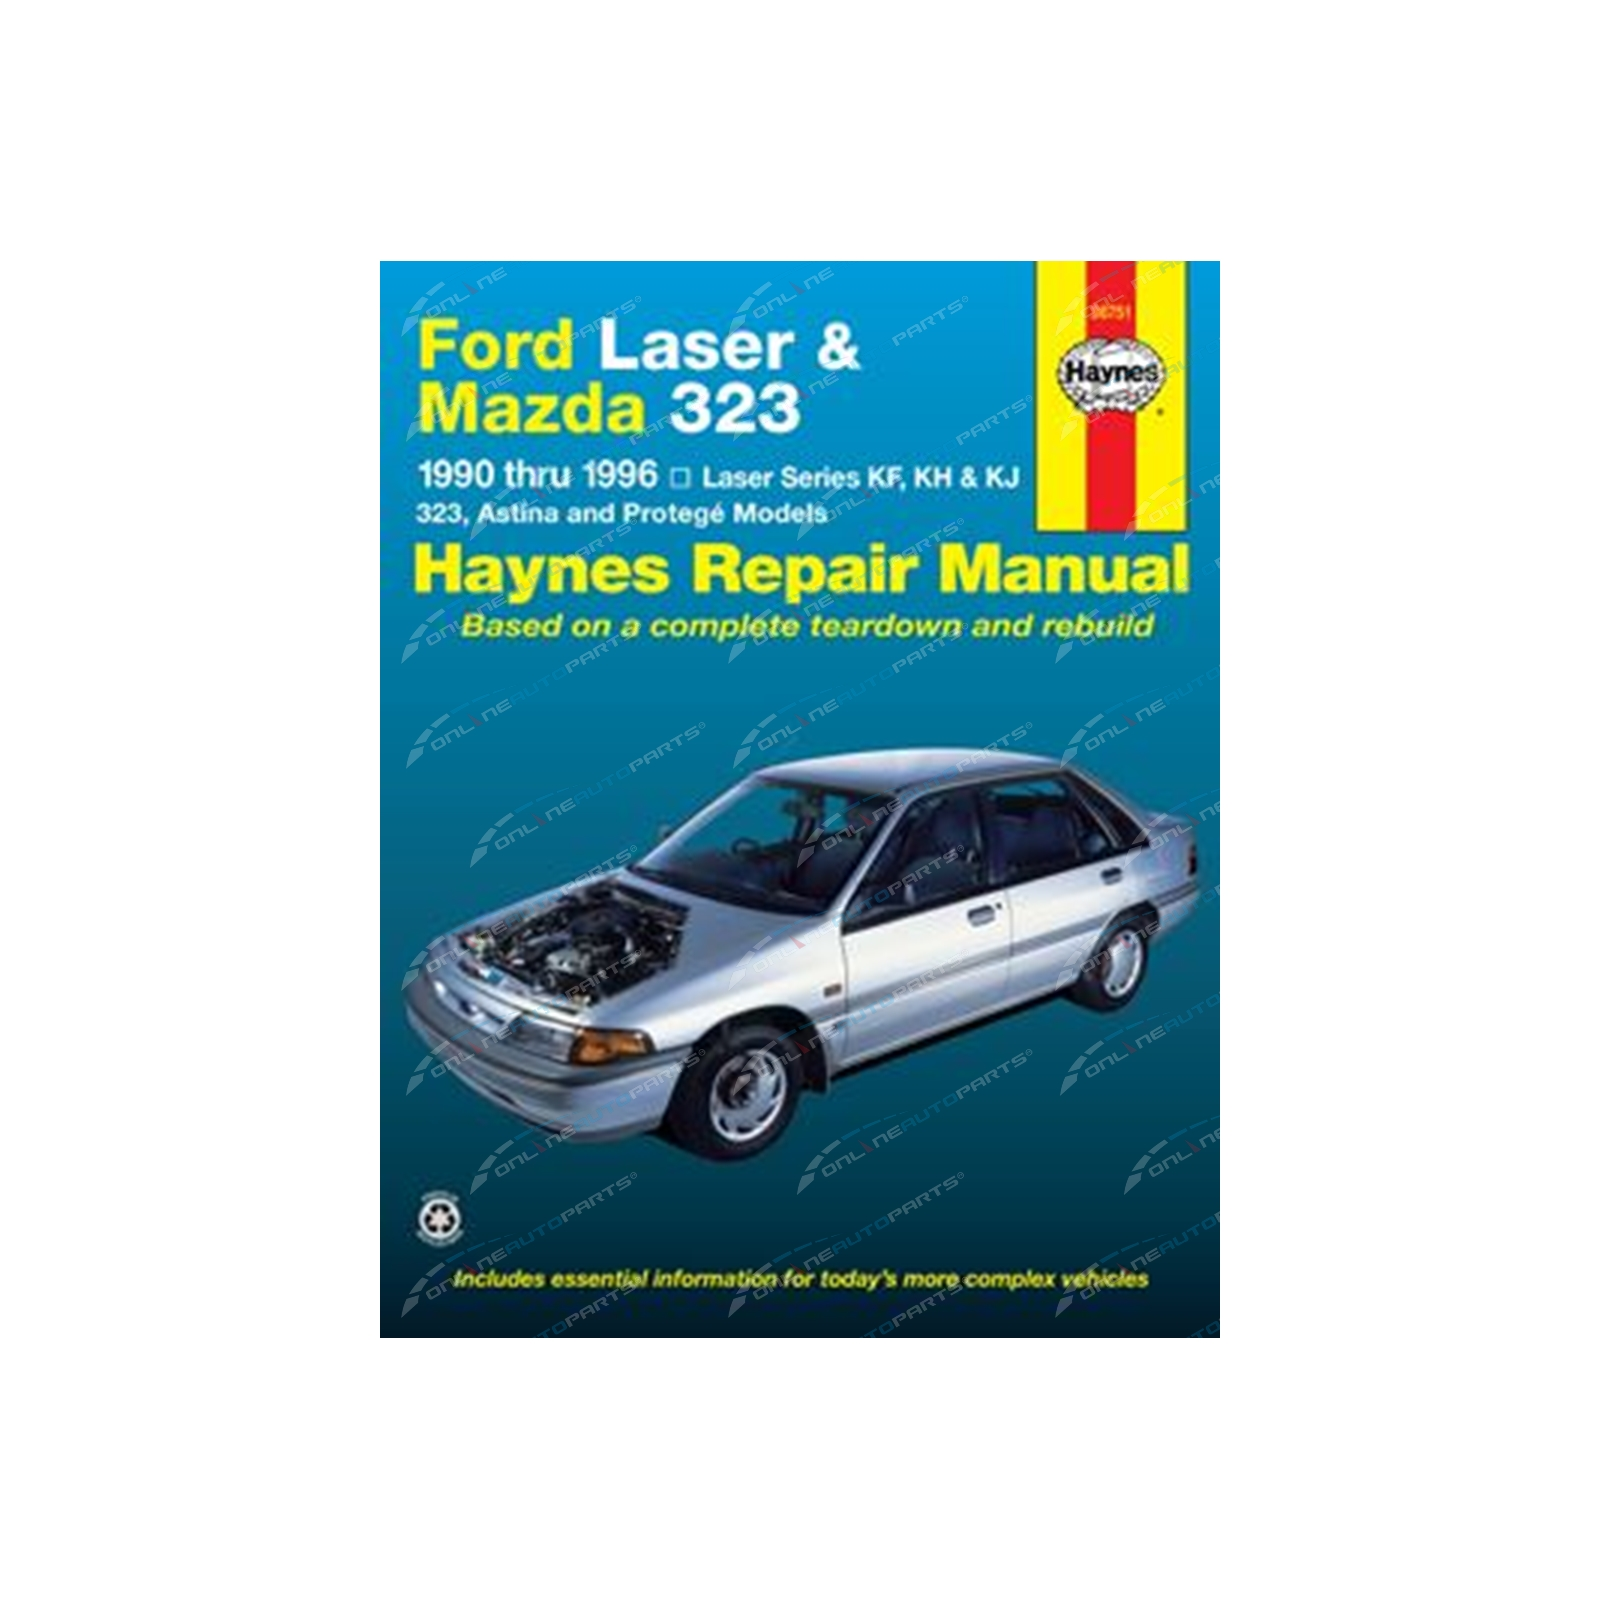 Haynes Car Repair Manual Book Laser KF KH KJ 90-99 1.3L 1.6L ...